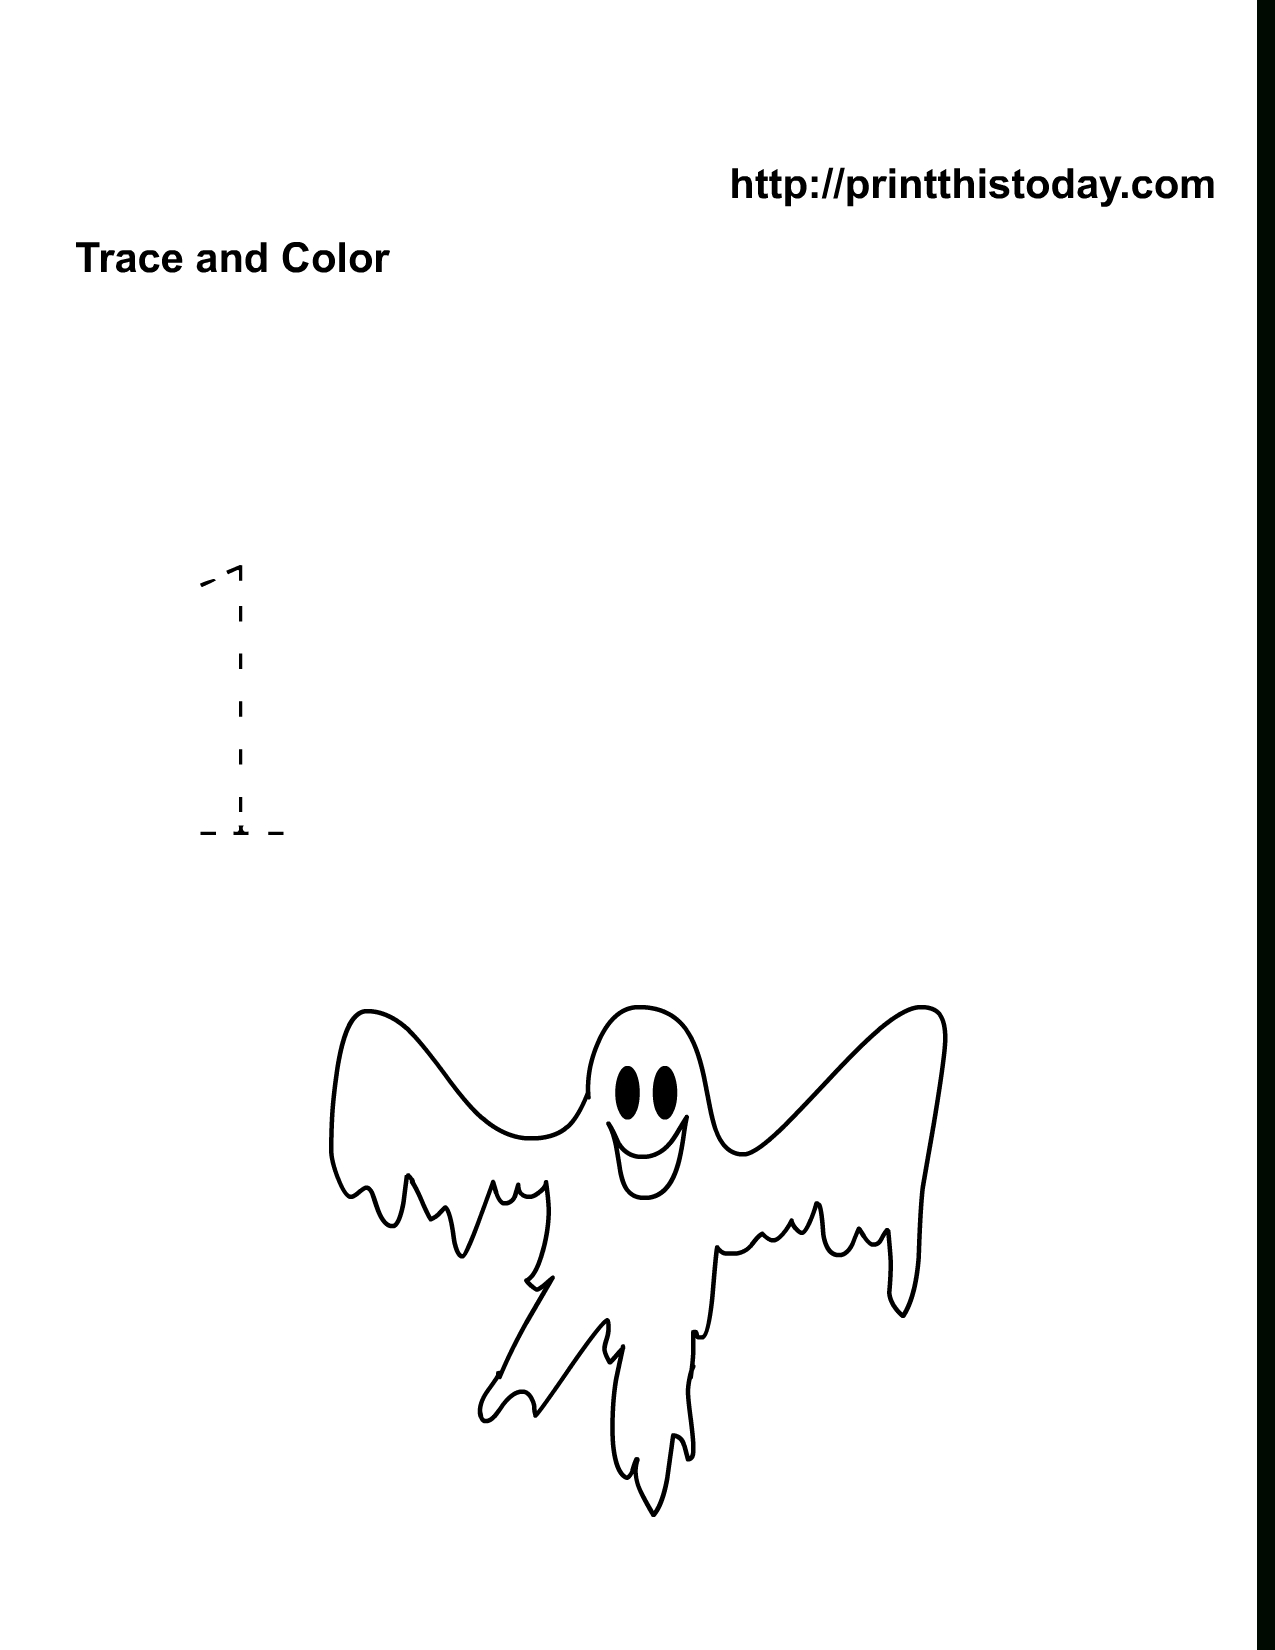 Free Printable Halloween Math Worksheets For Pre-School And Kindergarten | Printable Halloween Math Worksheets